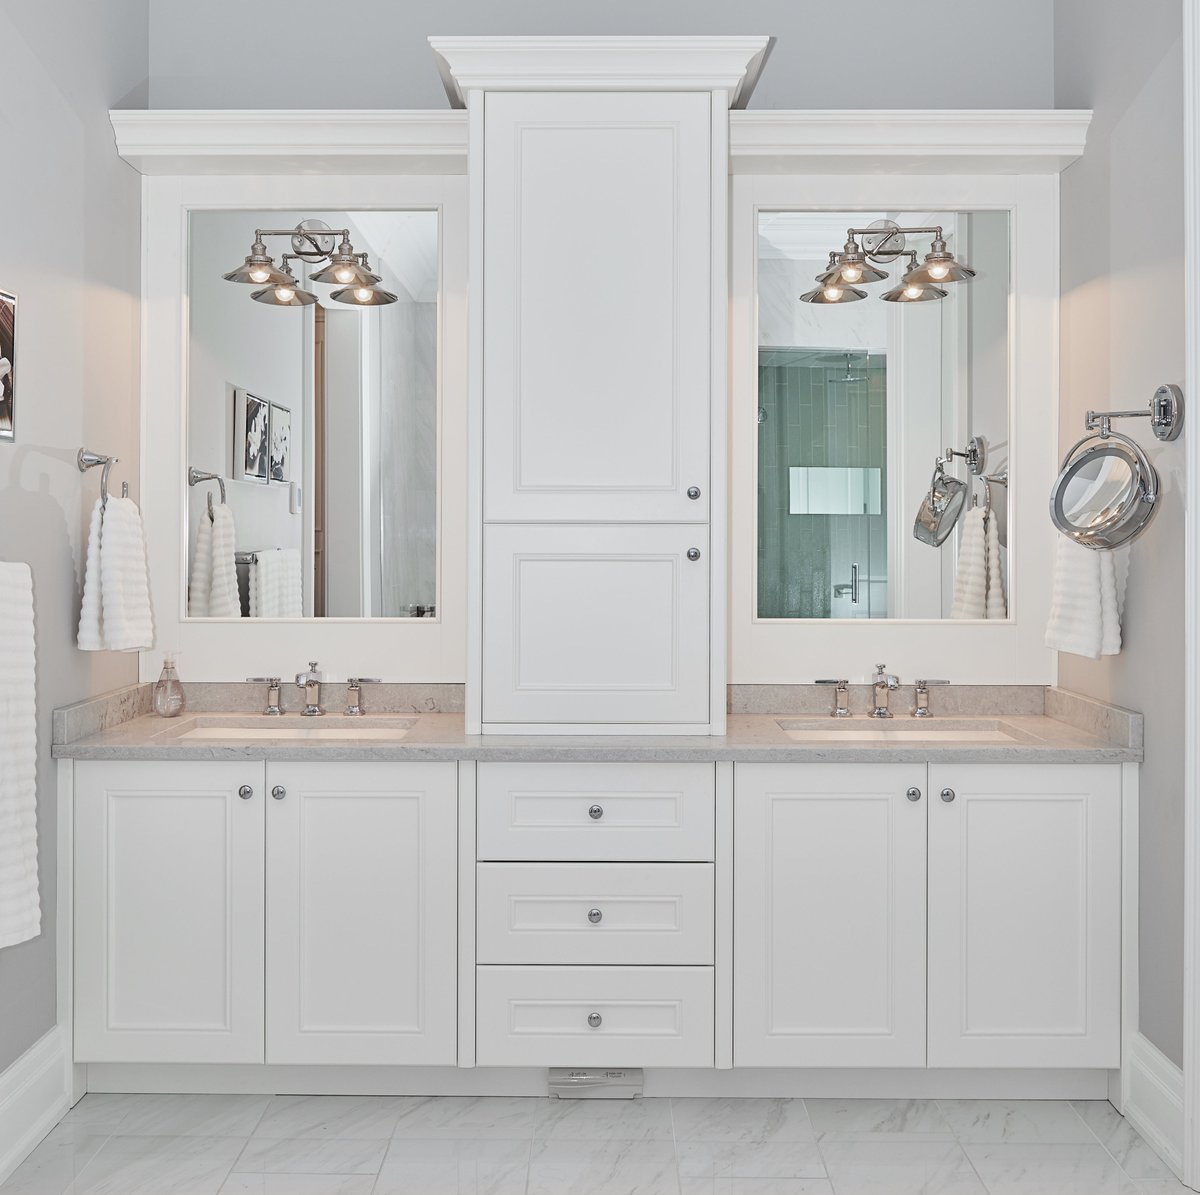 Scott Arthur Millwork Cabinetry Ltd On Twitter No Need To Take Turns In Getting Ready As This Bathroom Vanity Has Two Separate Mirrors Faucets And Lots Of Storage Space We Design